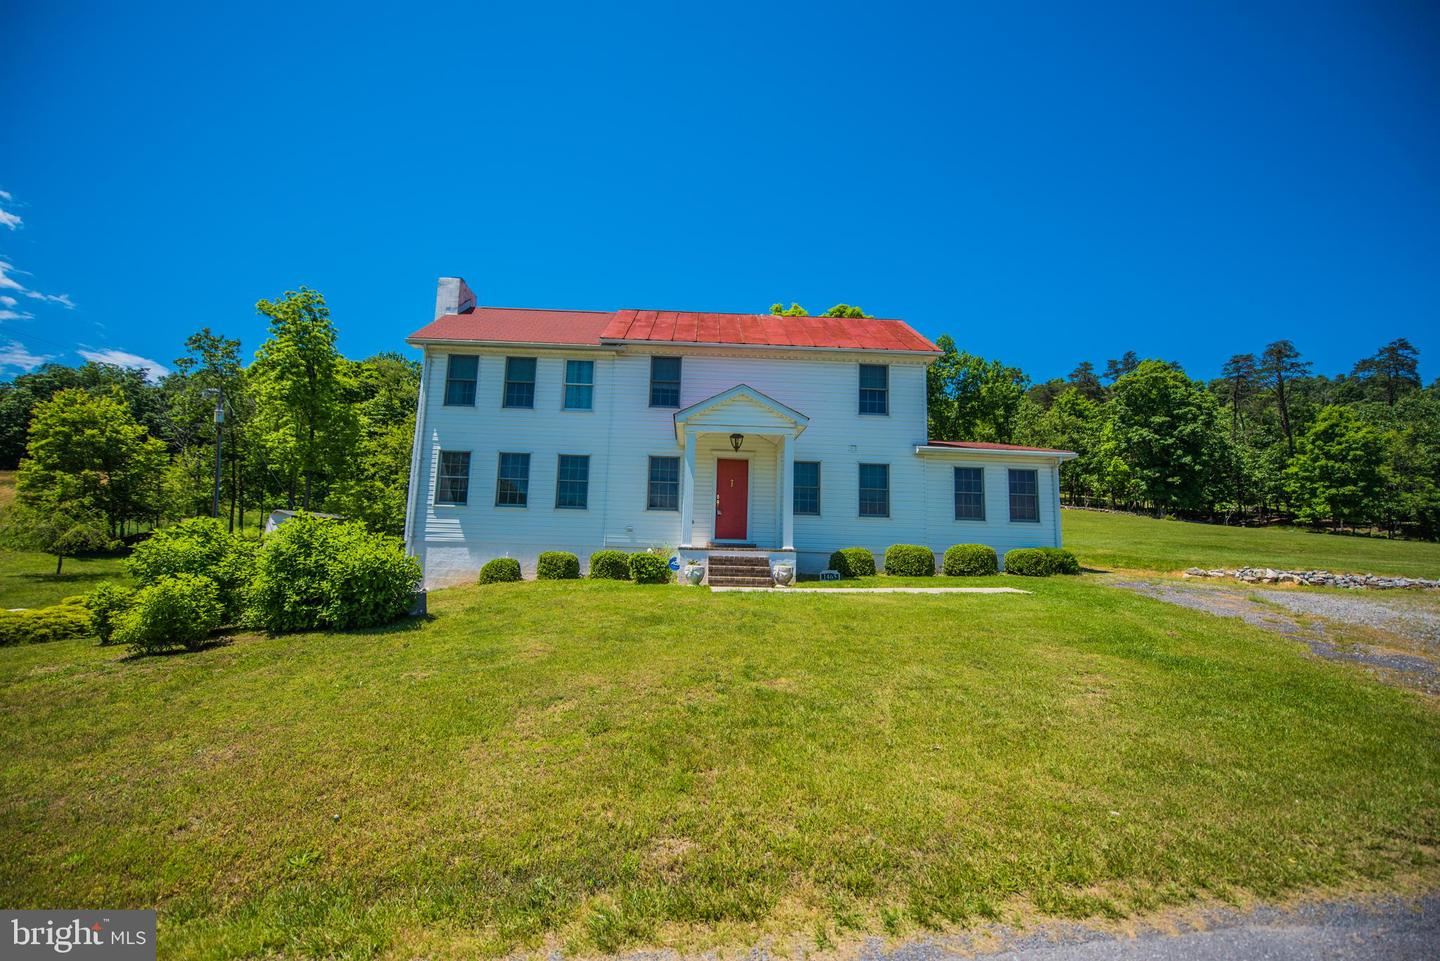 Additional photo for property listing at 1465 Henry O Michael Rd Berkeley Springs, West Virginia 25411 United States